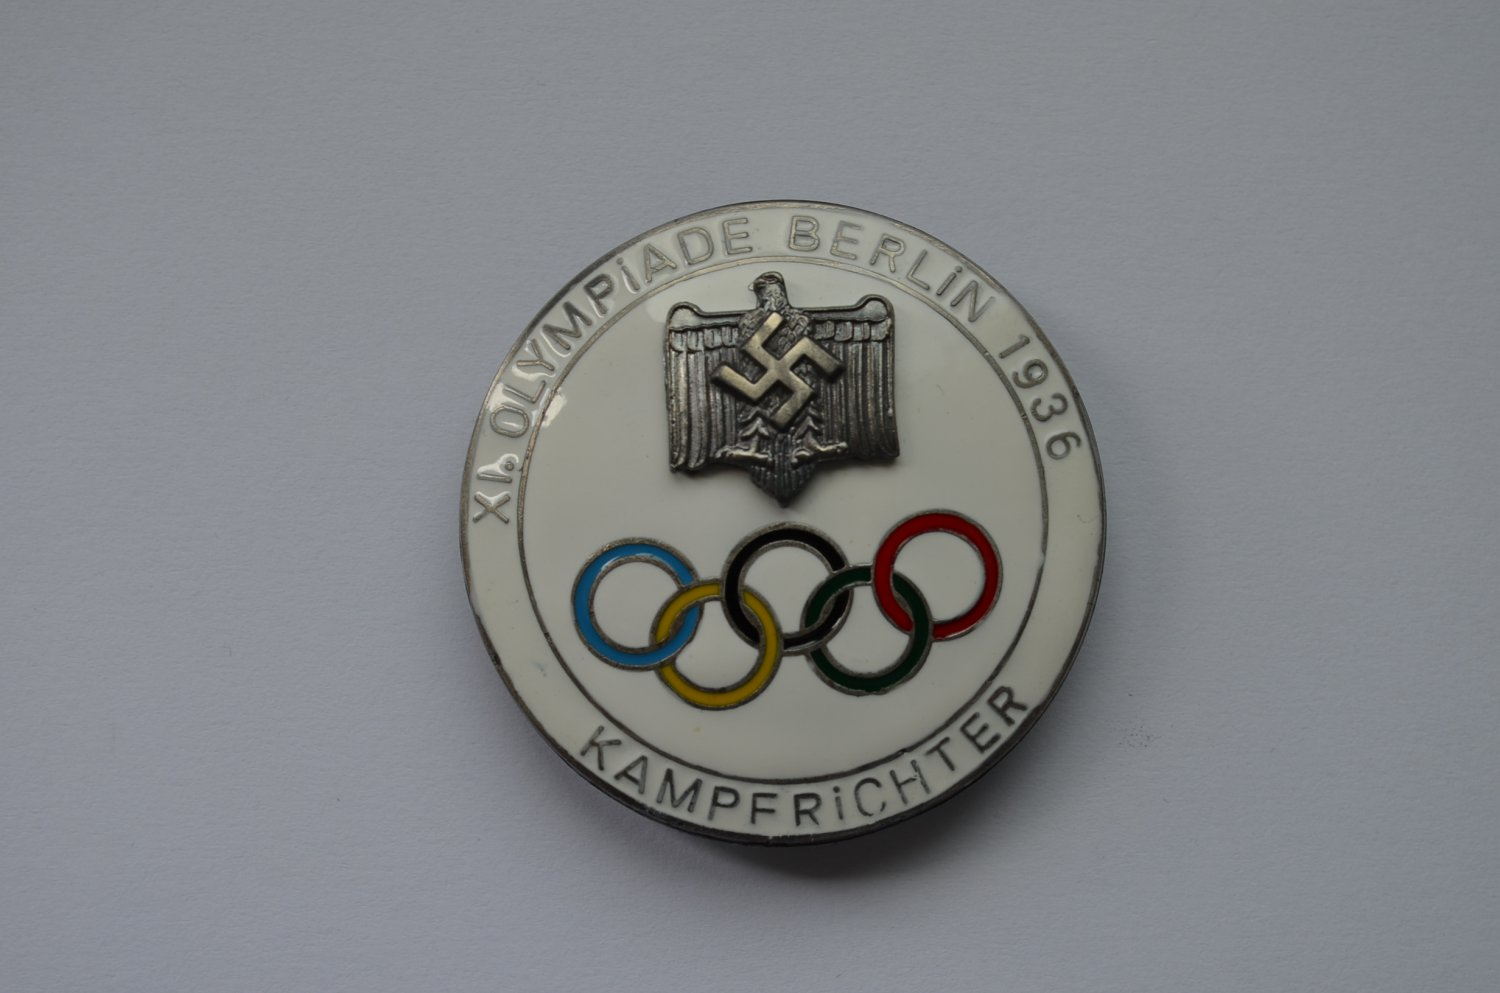 WWII THE GERMAN BADGE XI OLYMPIADE BERLIN 1936 KAMPFRICHTER WHITE